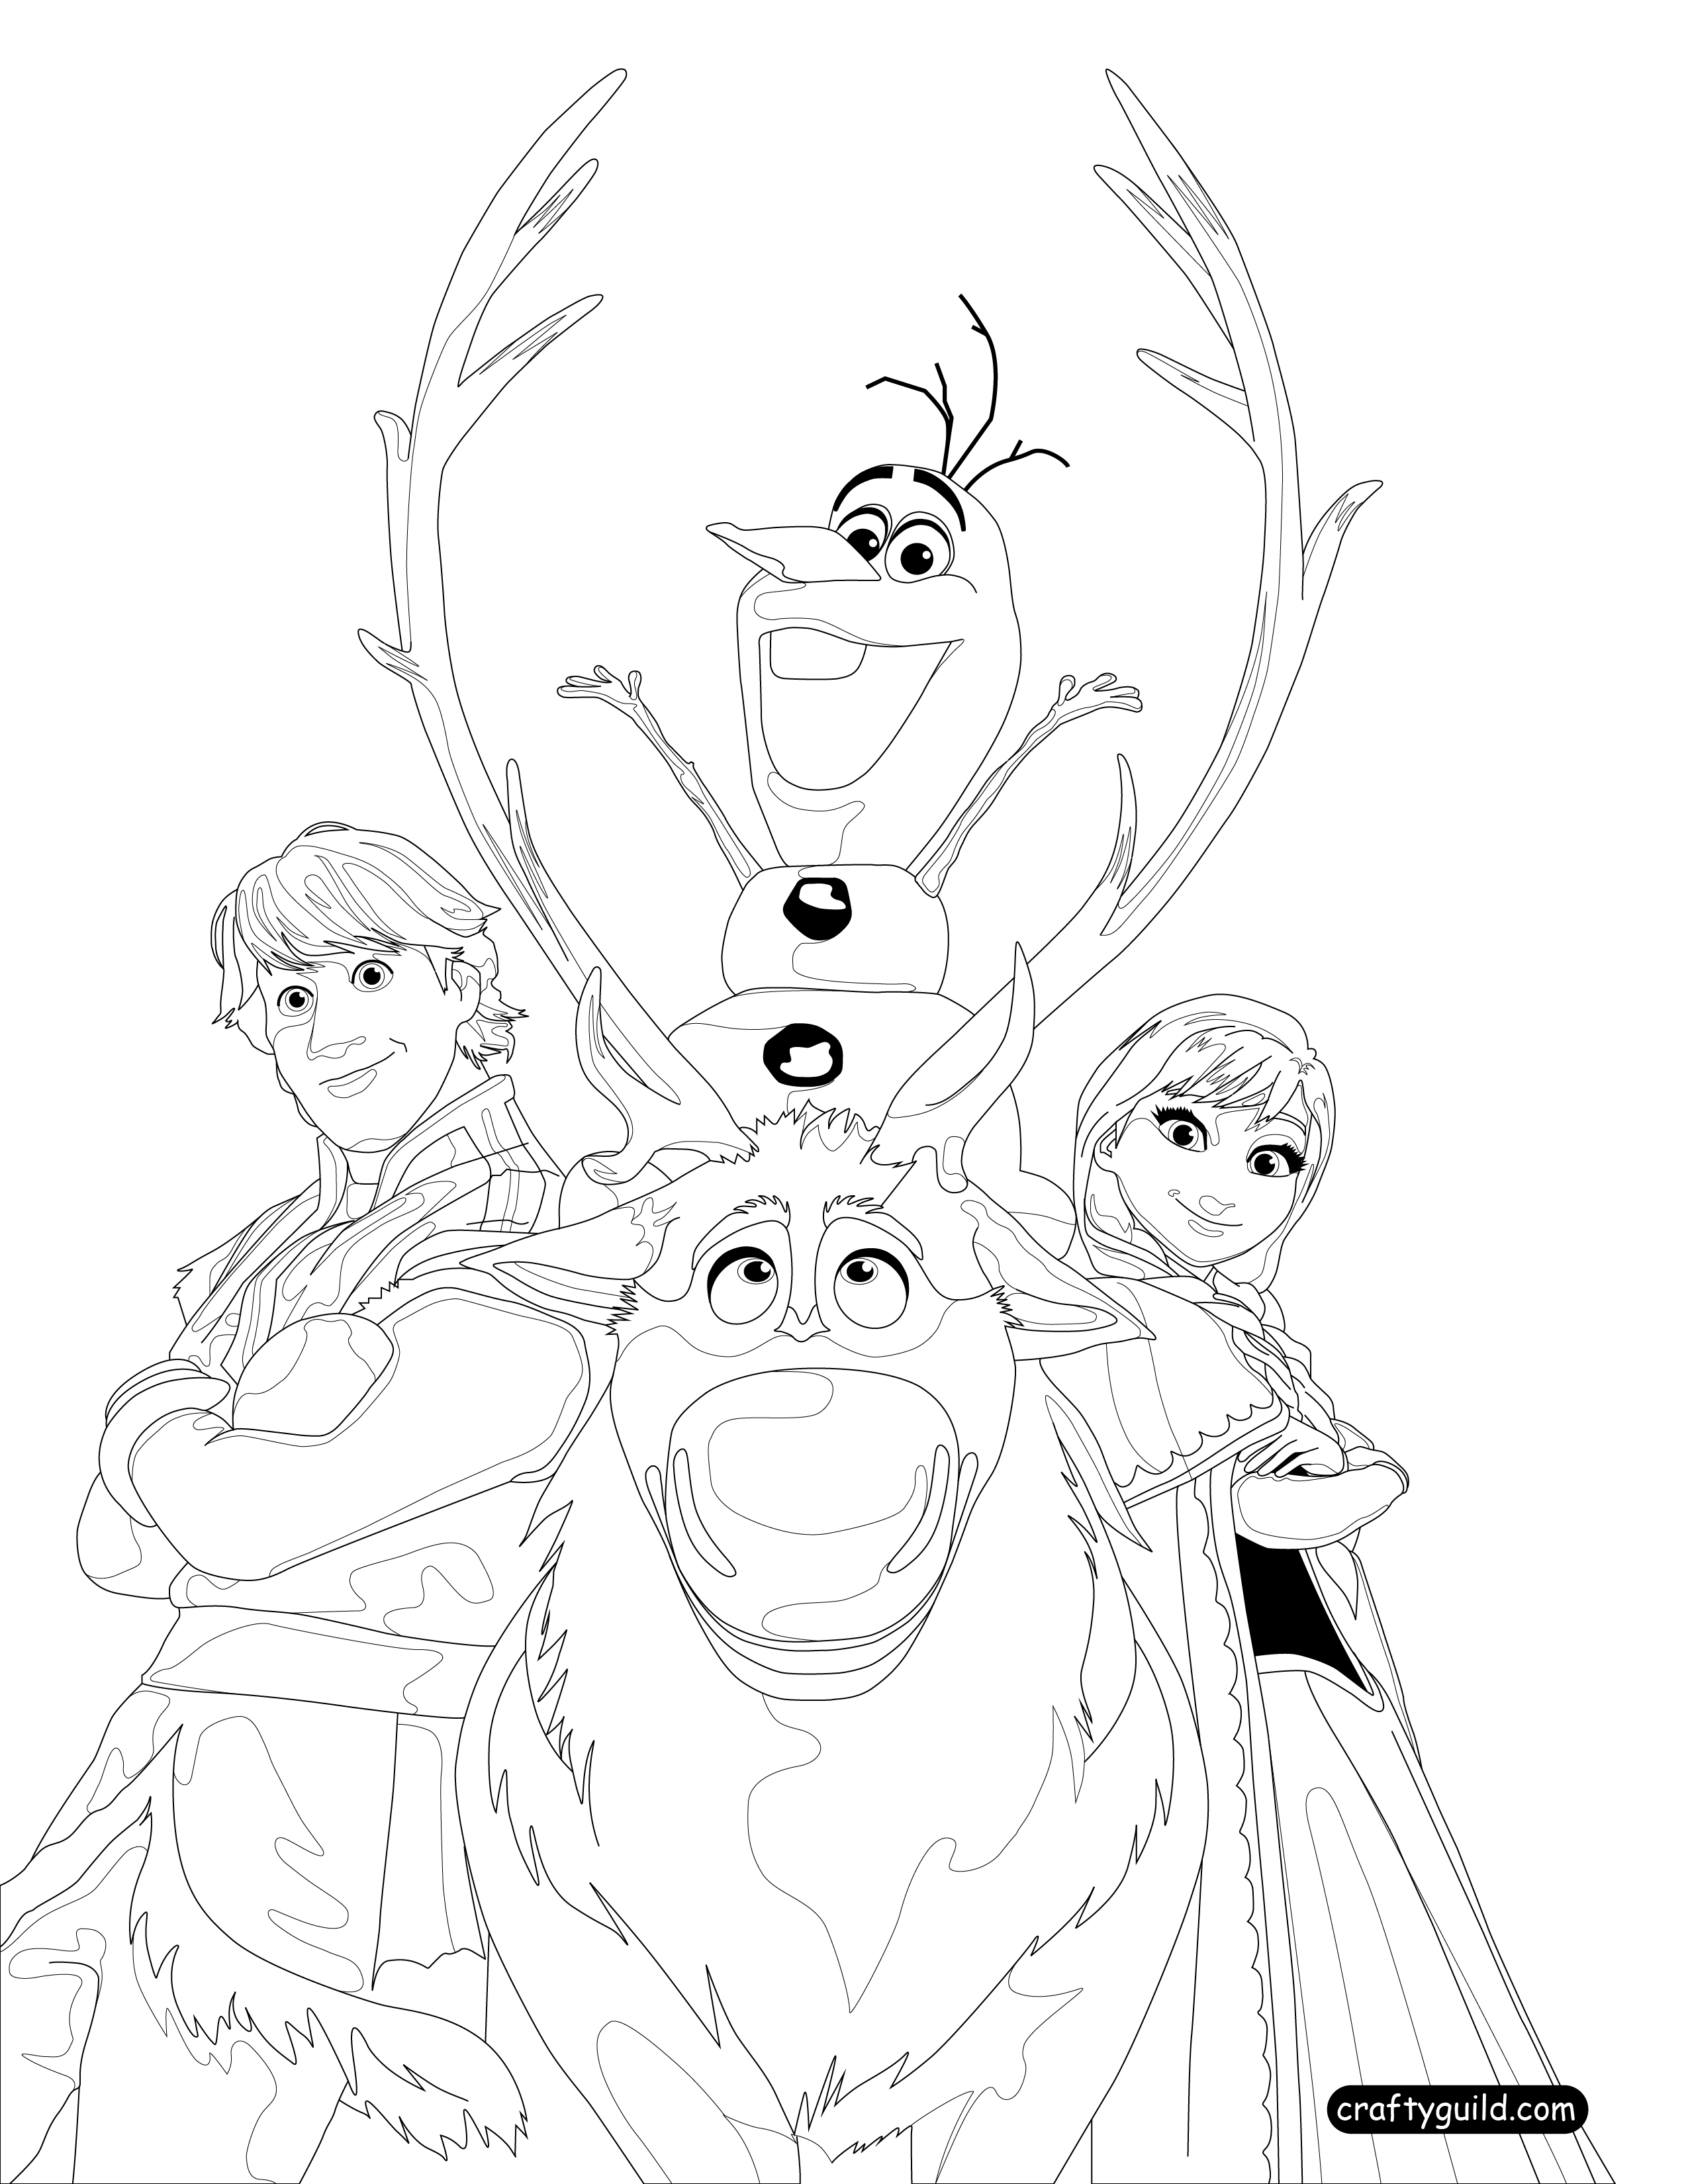 frozen drawings to color elsa frozen drawing full body at paintingvalleycom drawings frozen color to